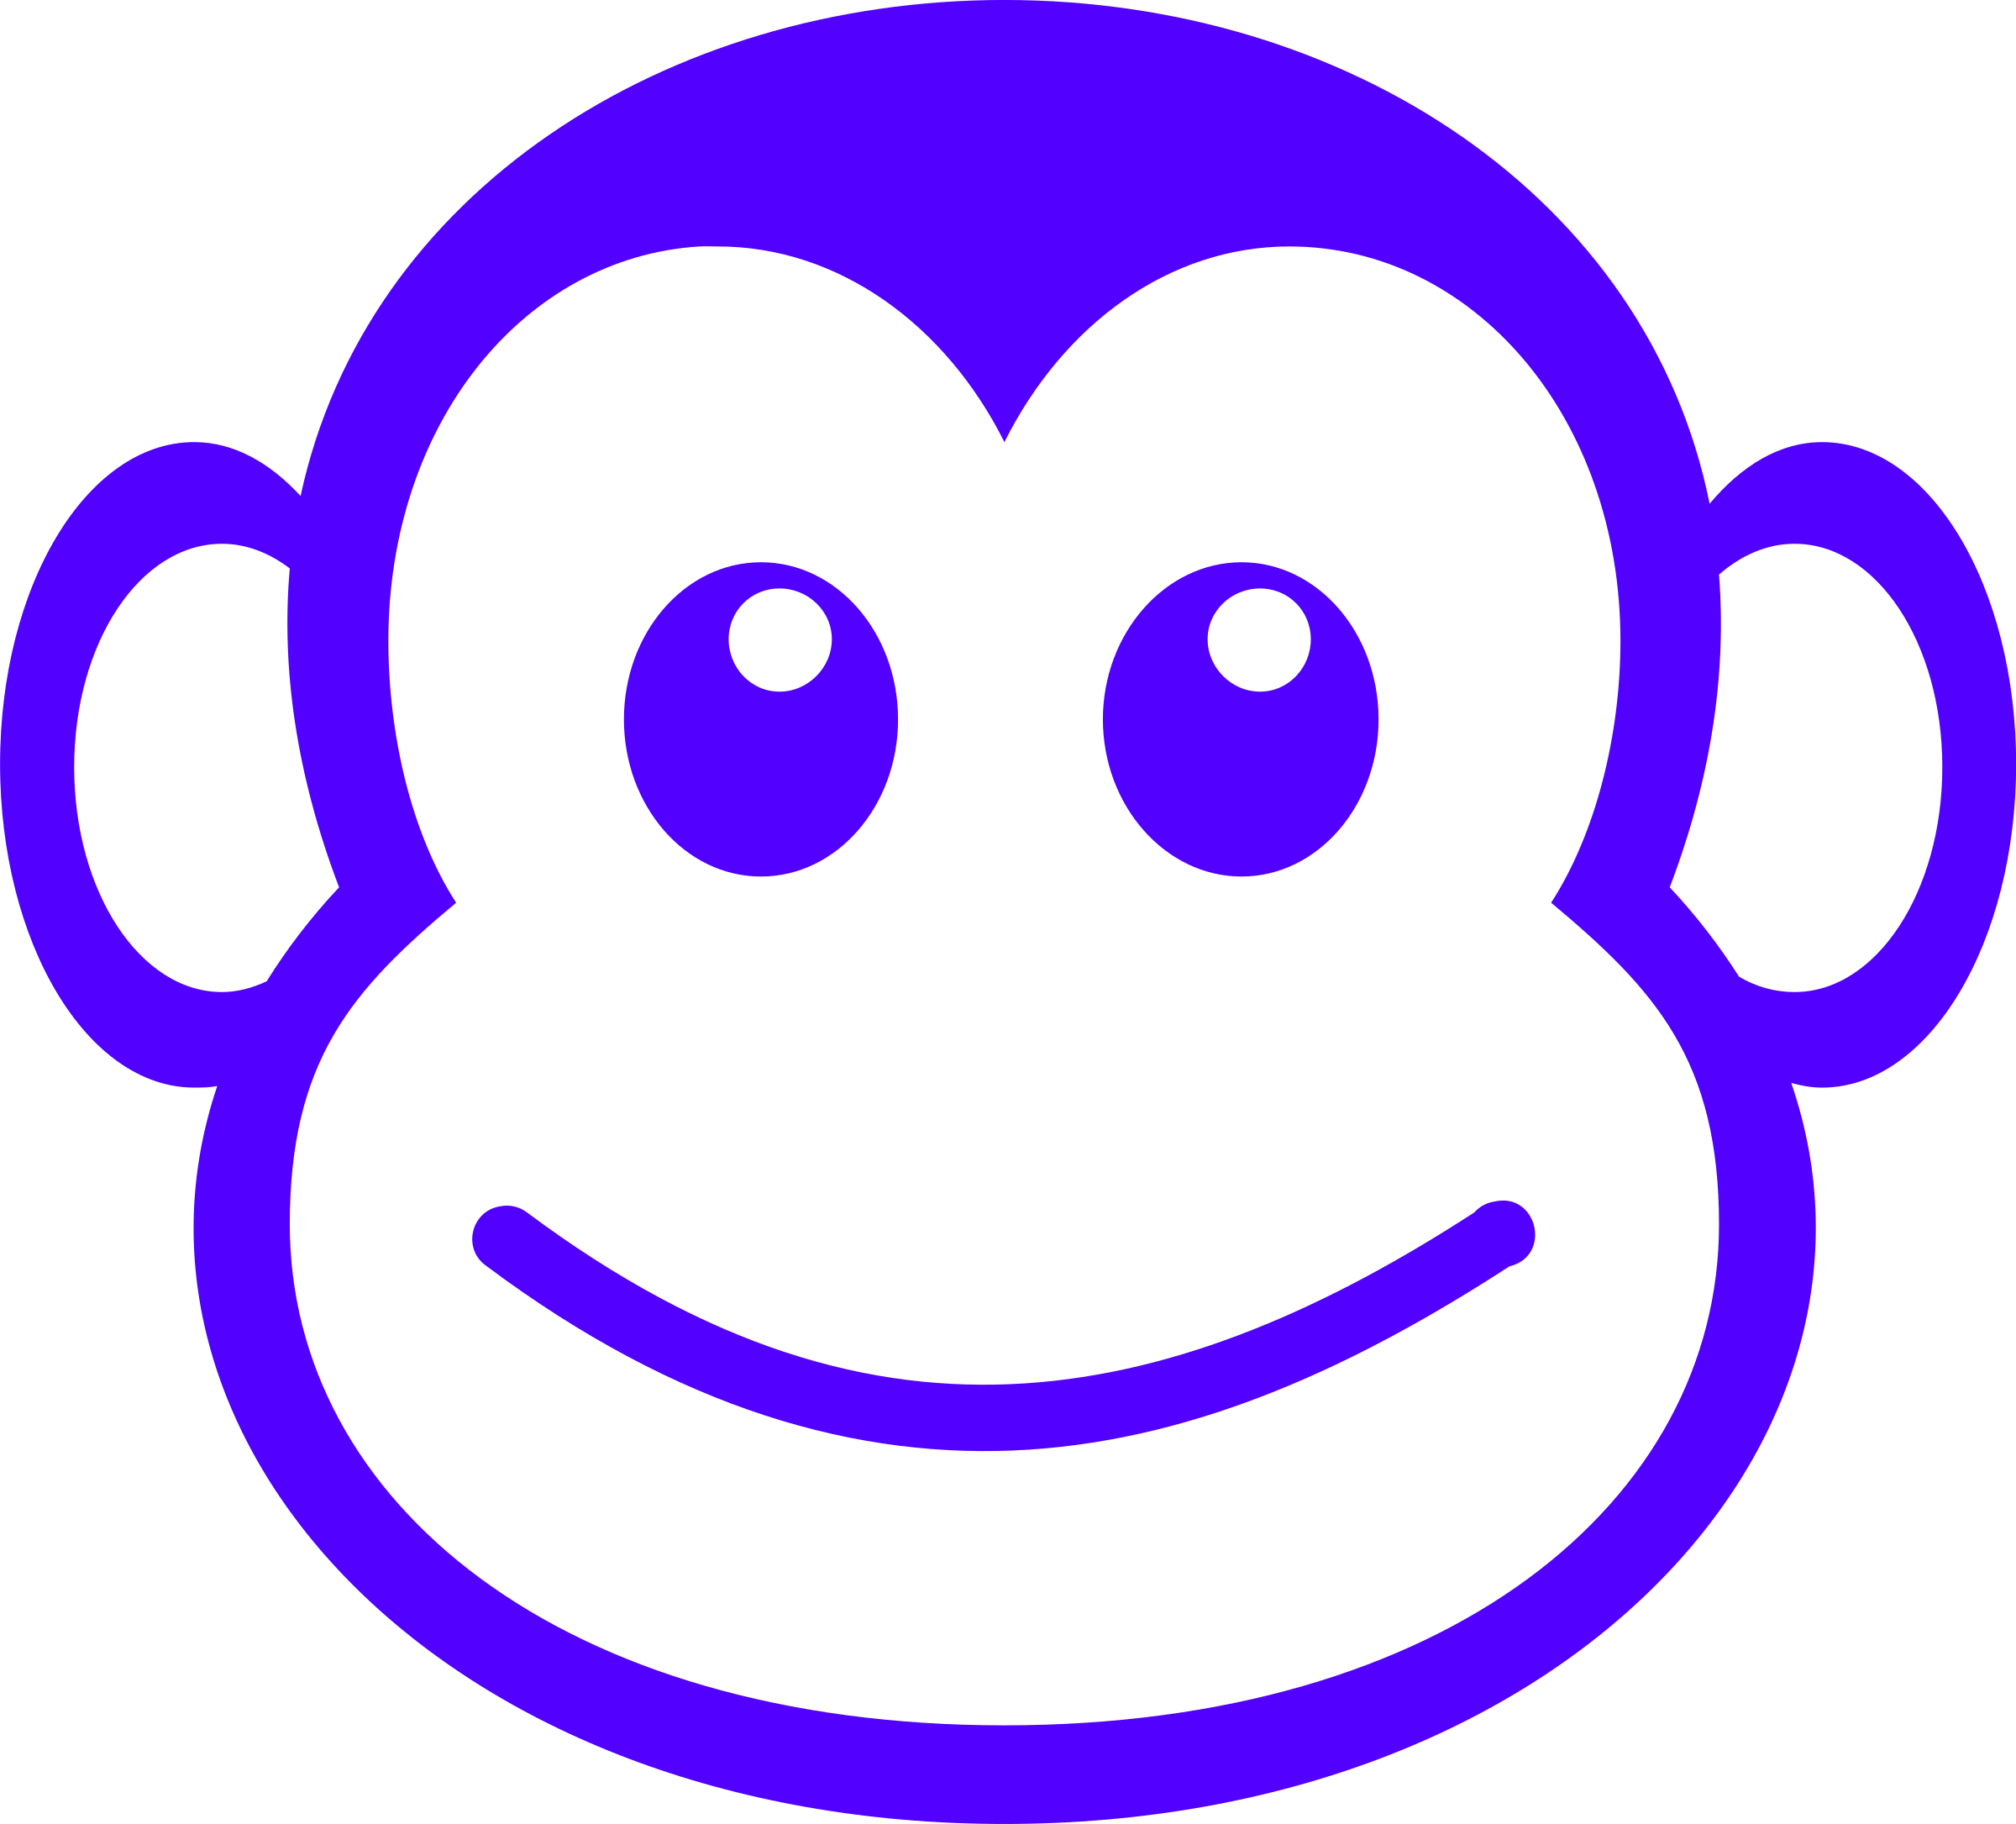 png transparent library Ape clipart svg. Monkey head drawing at